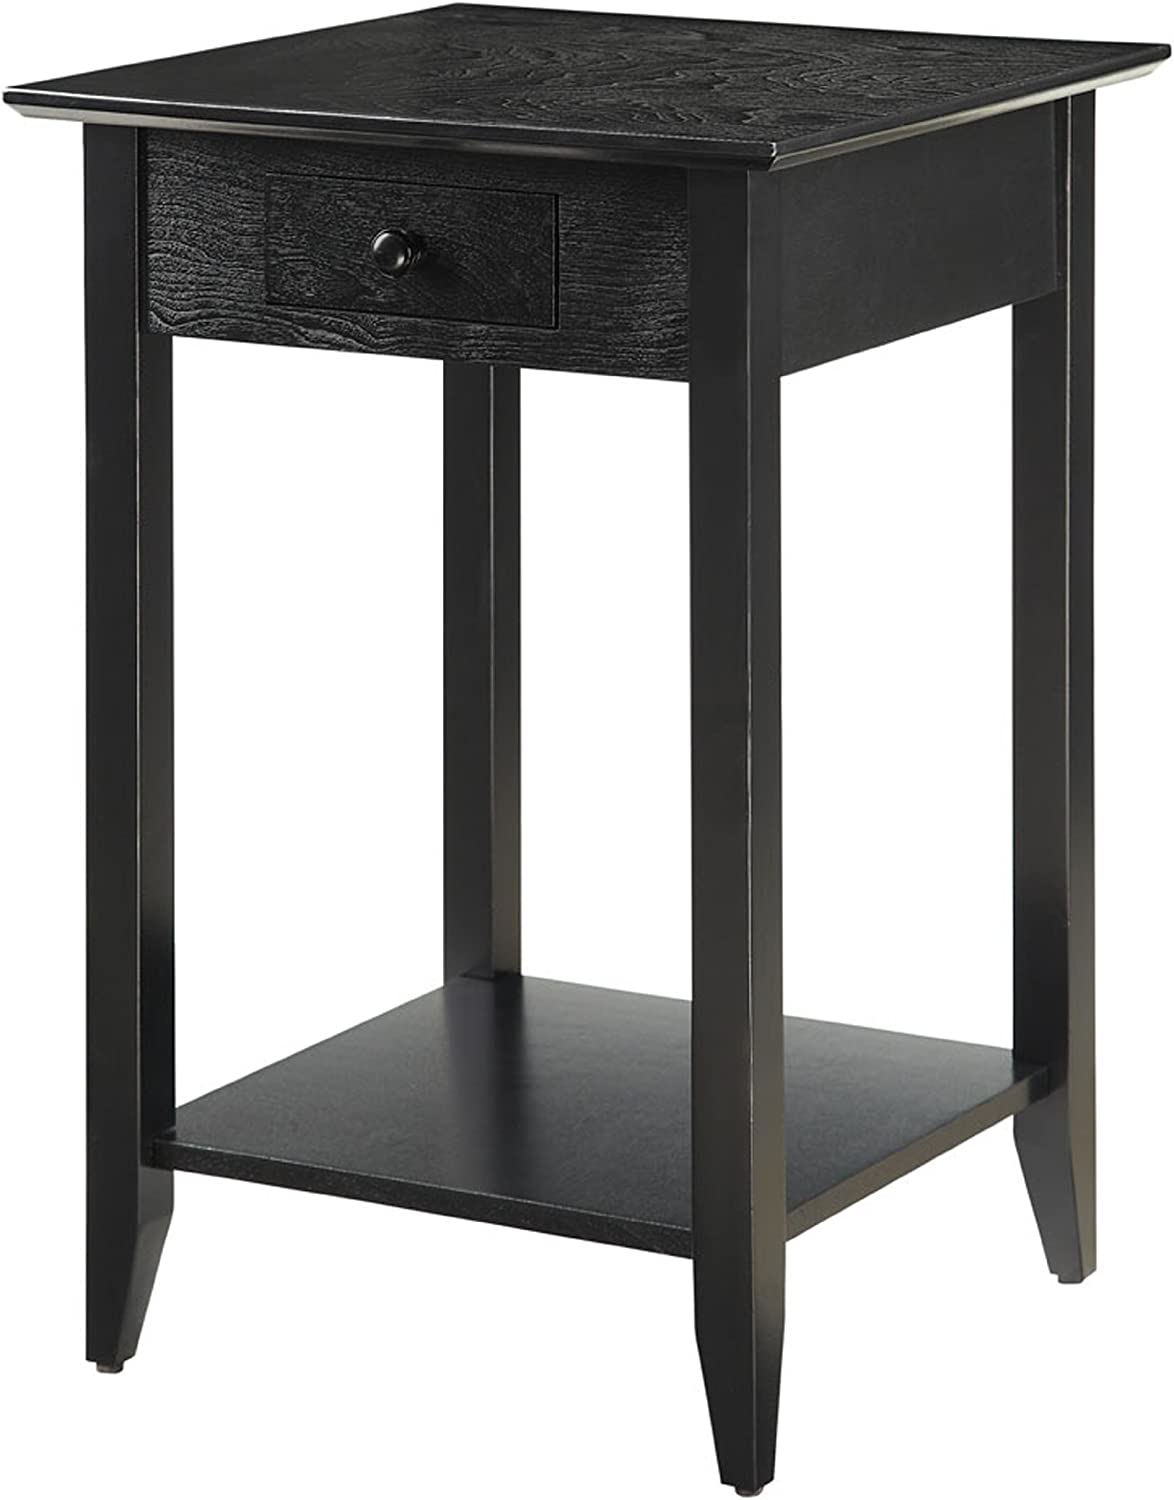 Convenience Concepts American Heritage End Table with Shelf and Drawer, Black